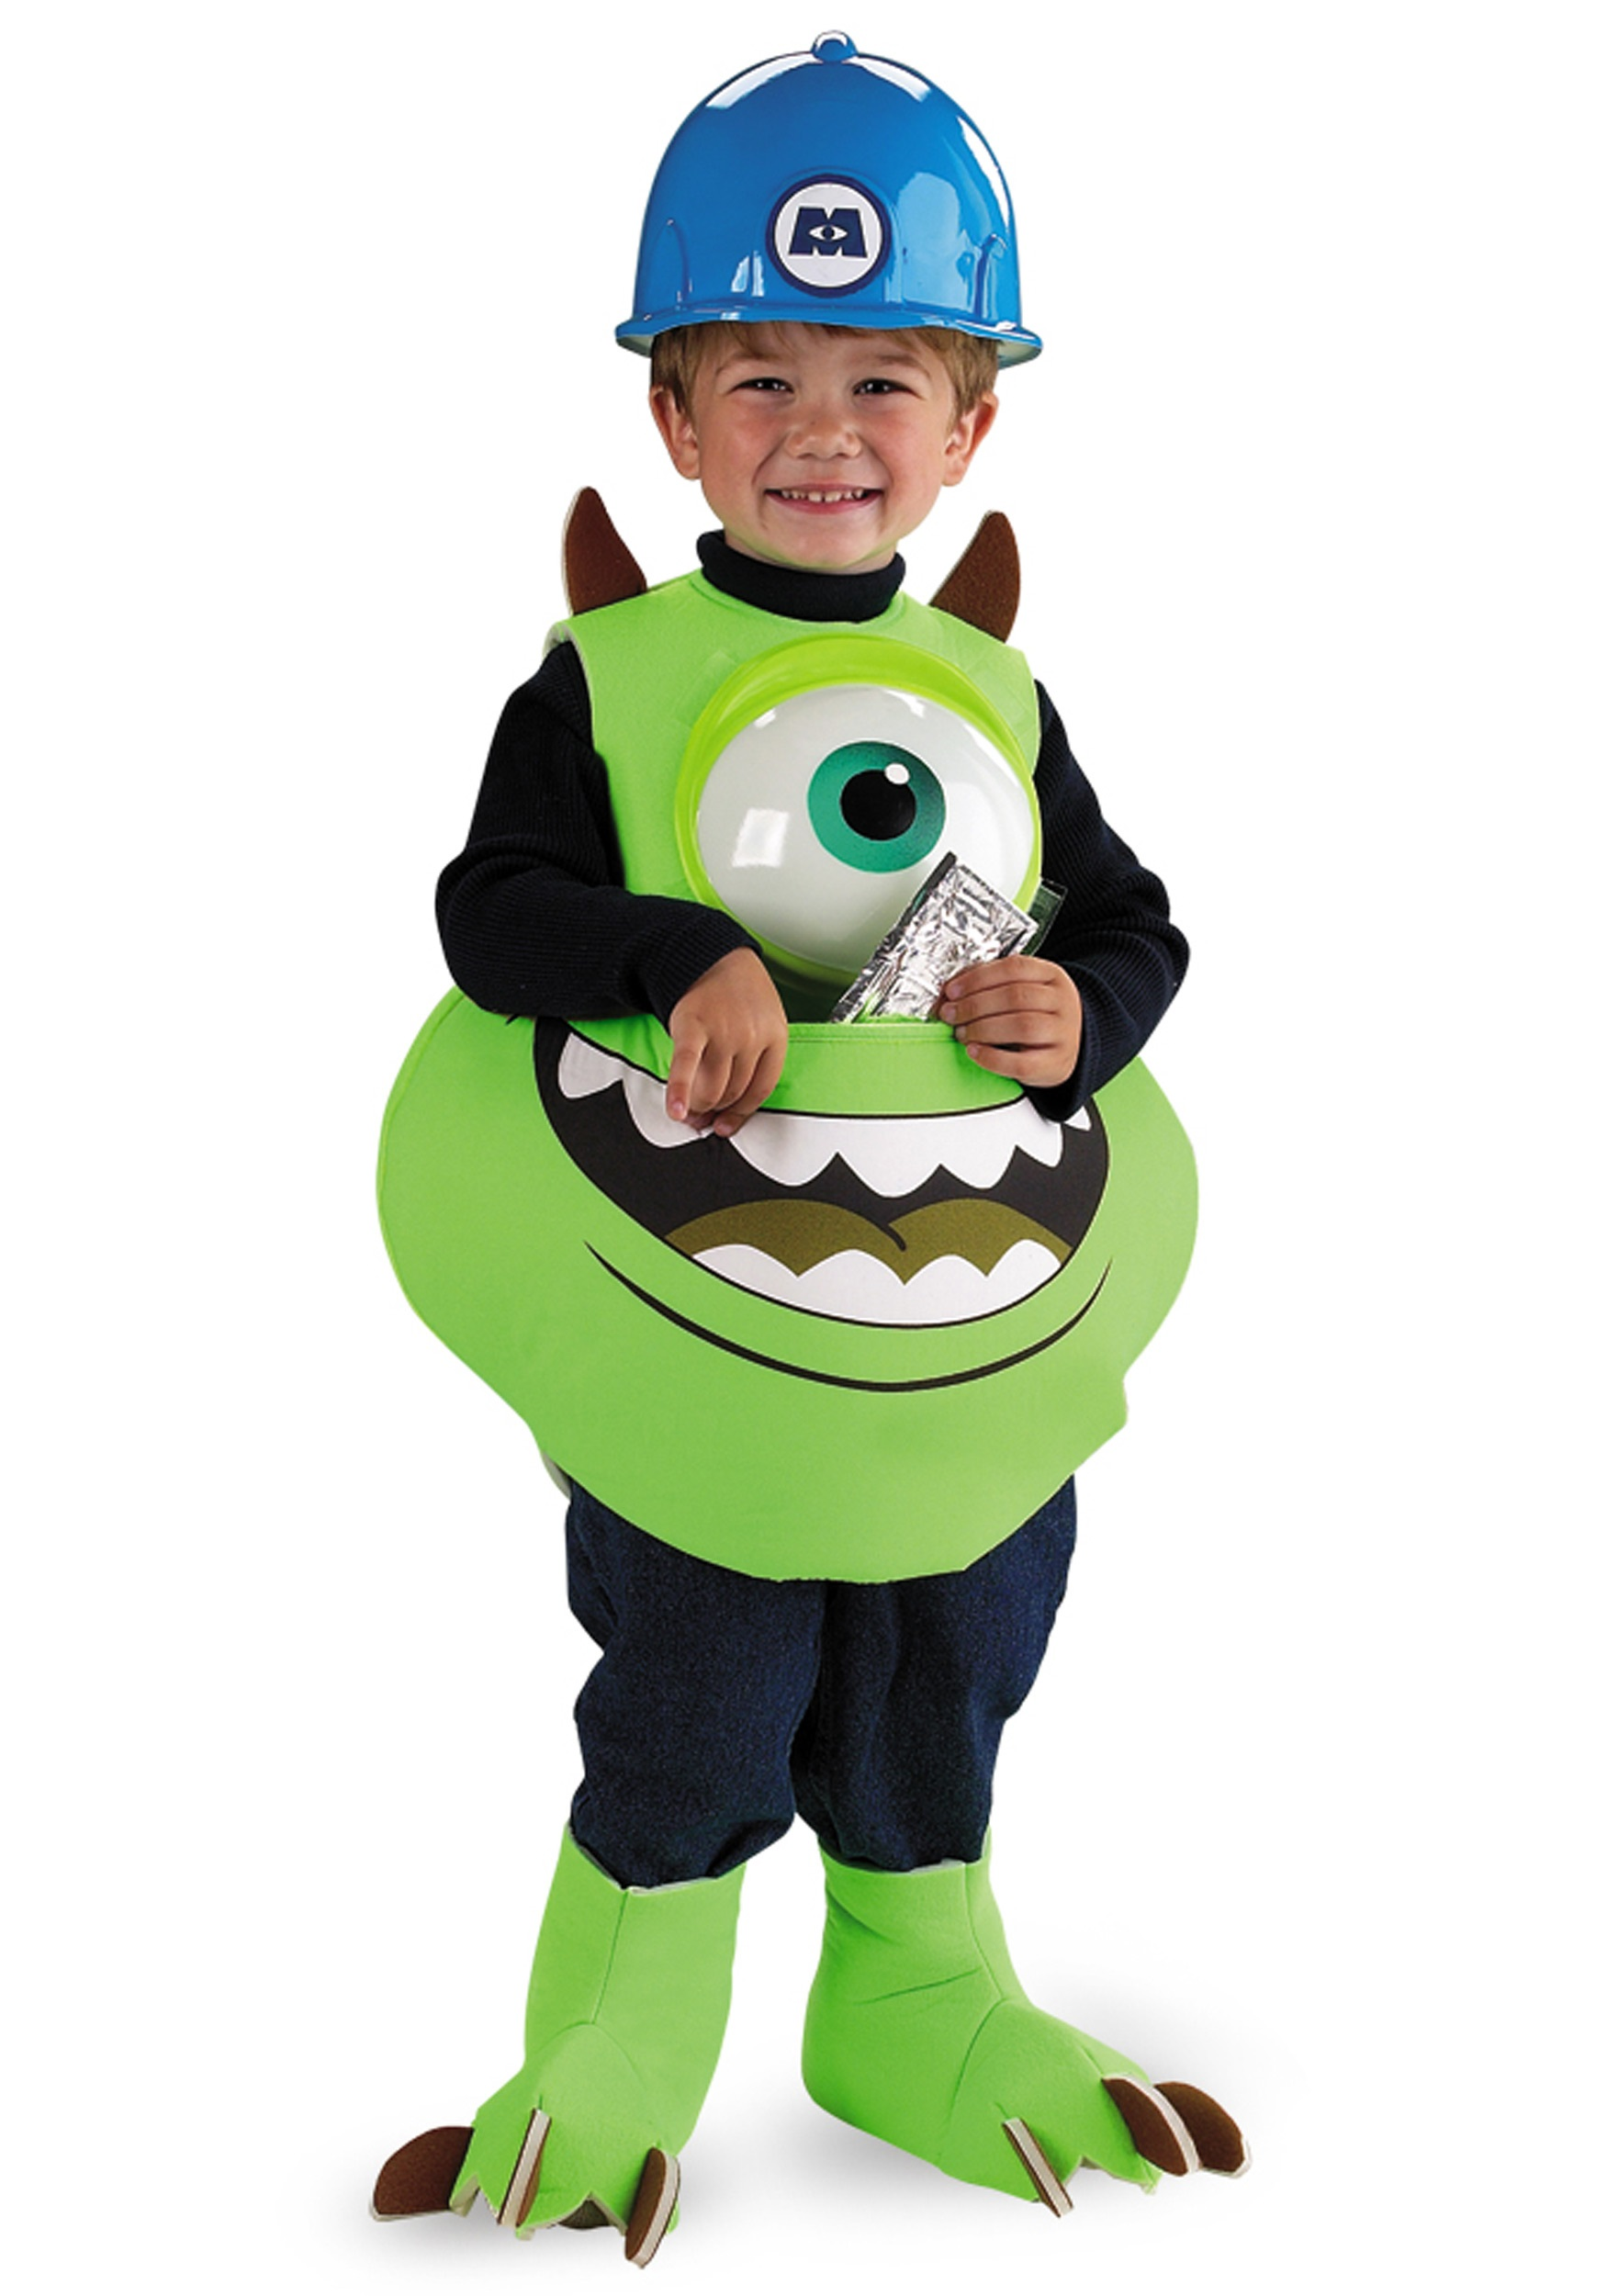 Kids Monster Mike Costume  sc 1 st  Halloween Costumes & Kids Monster Mike Costume - Halloween Costumes